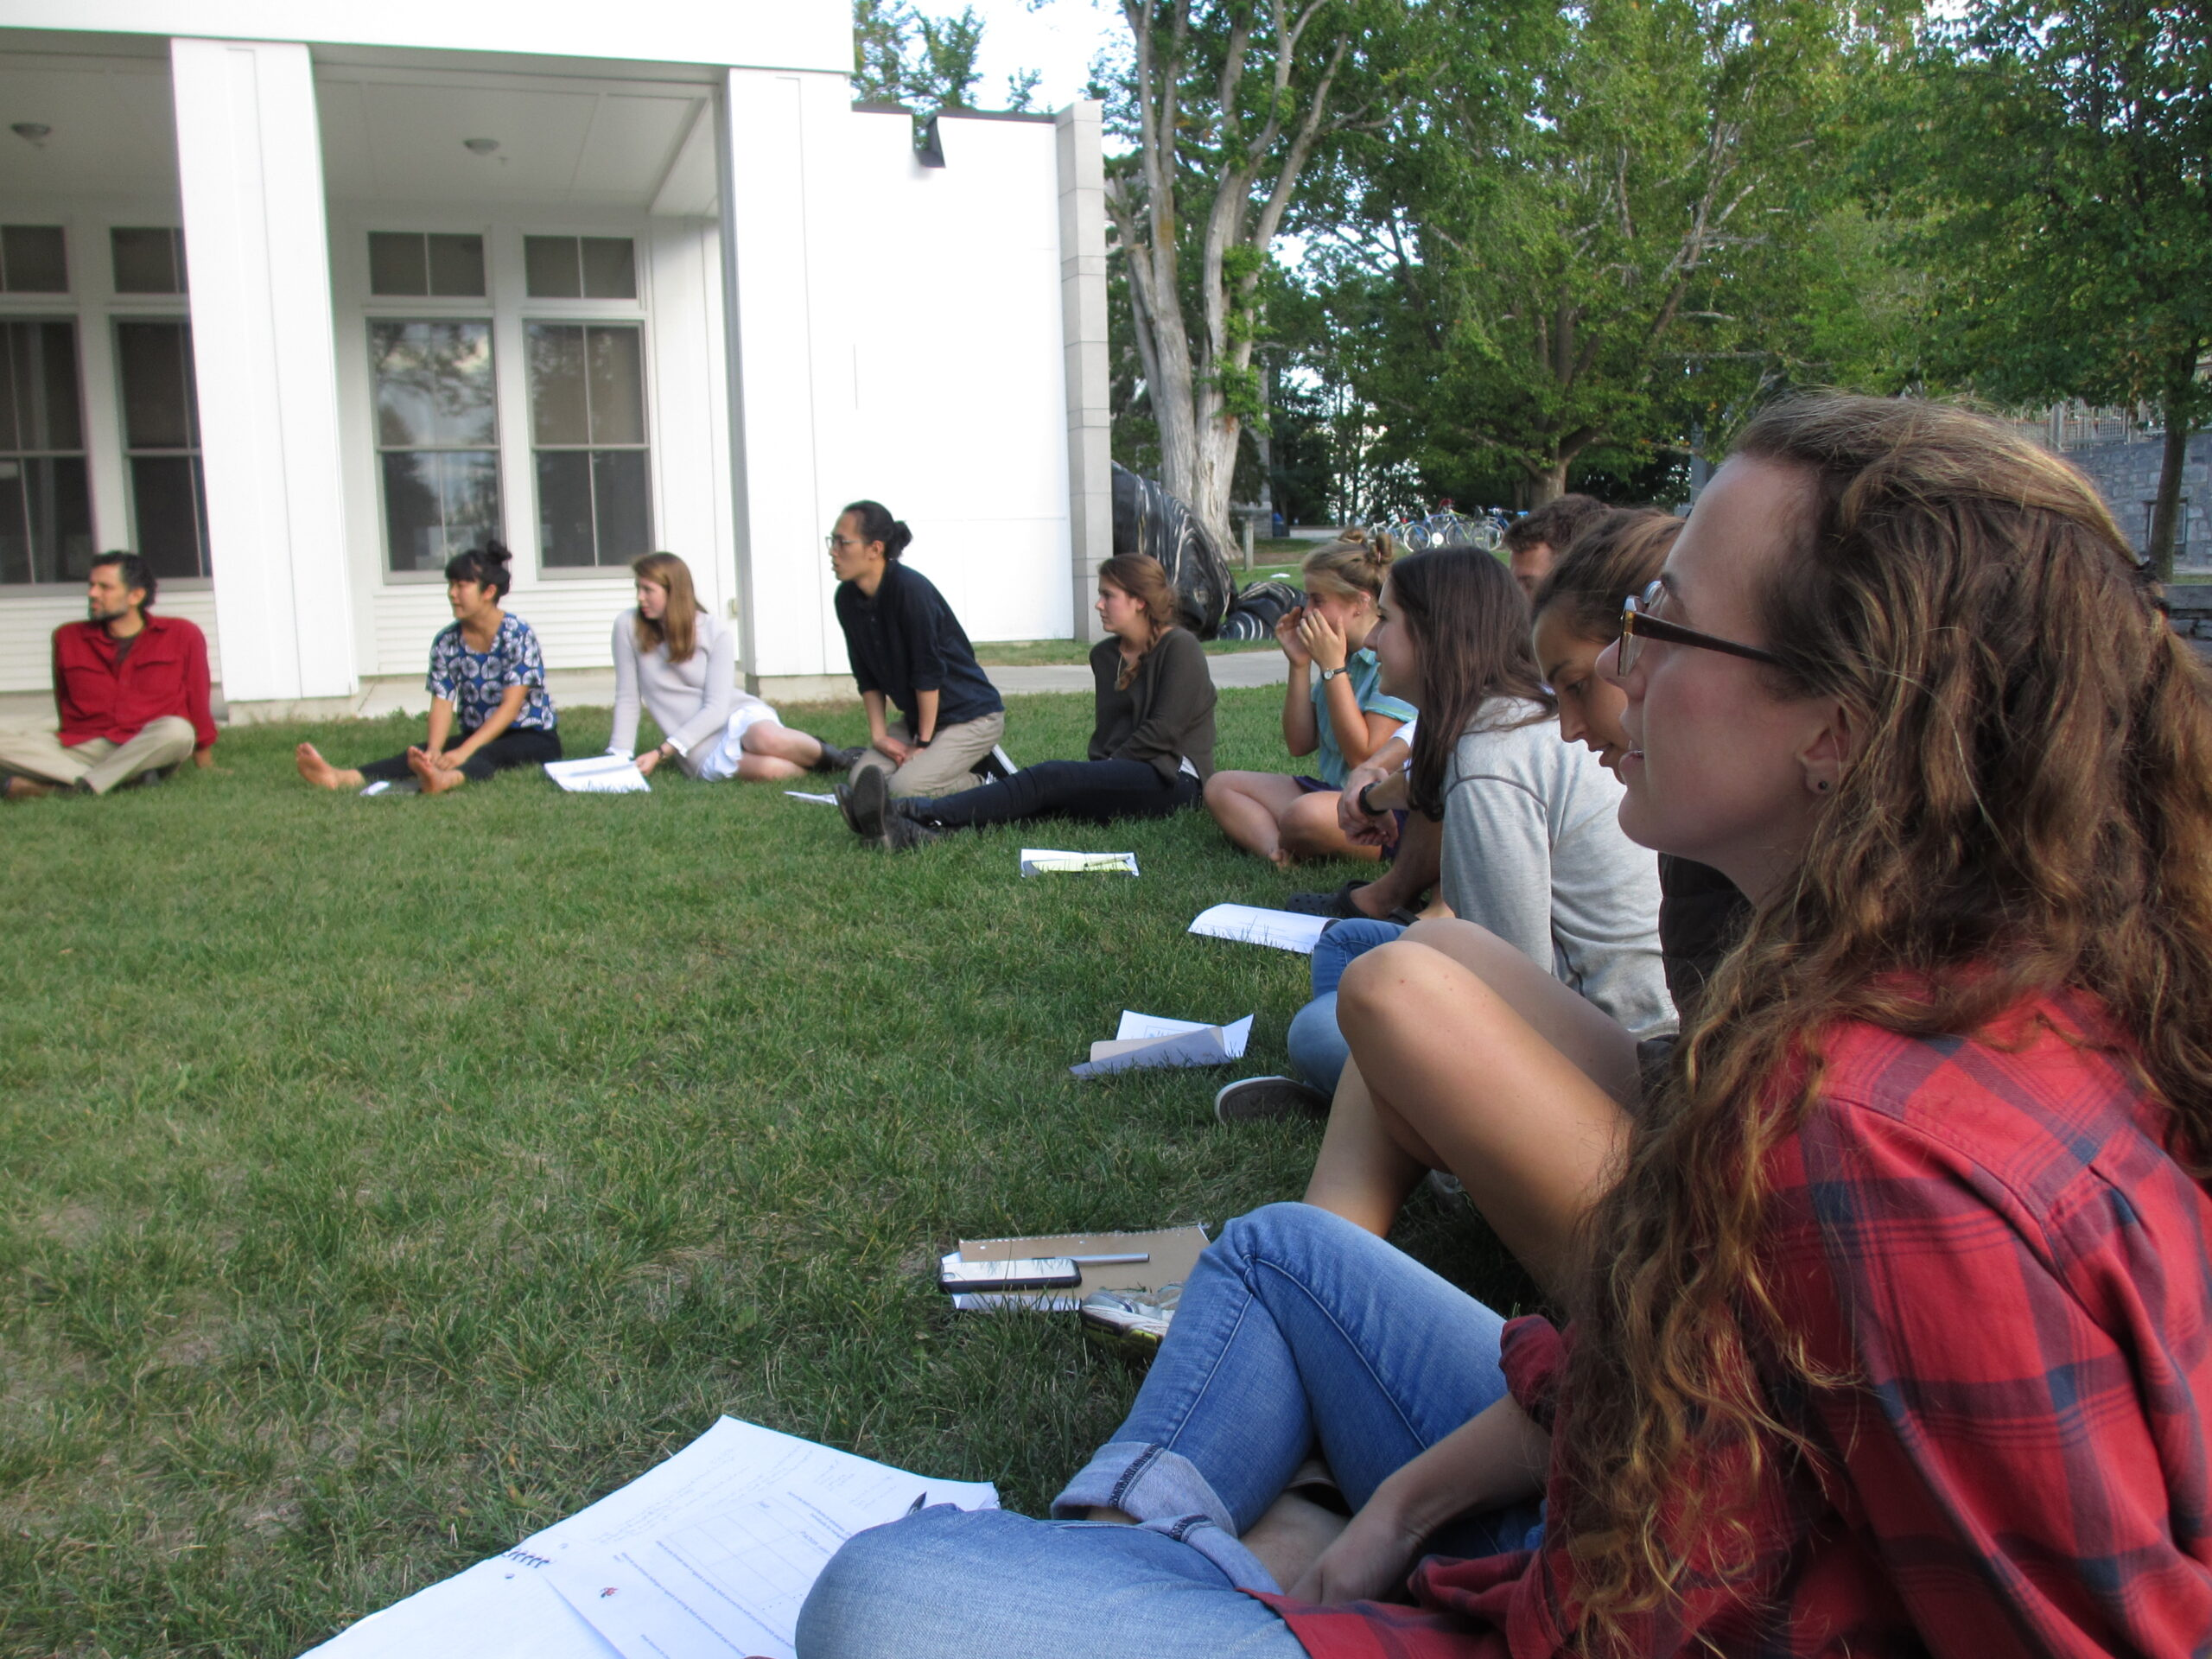 Students in a semi-circle sitting outdoors